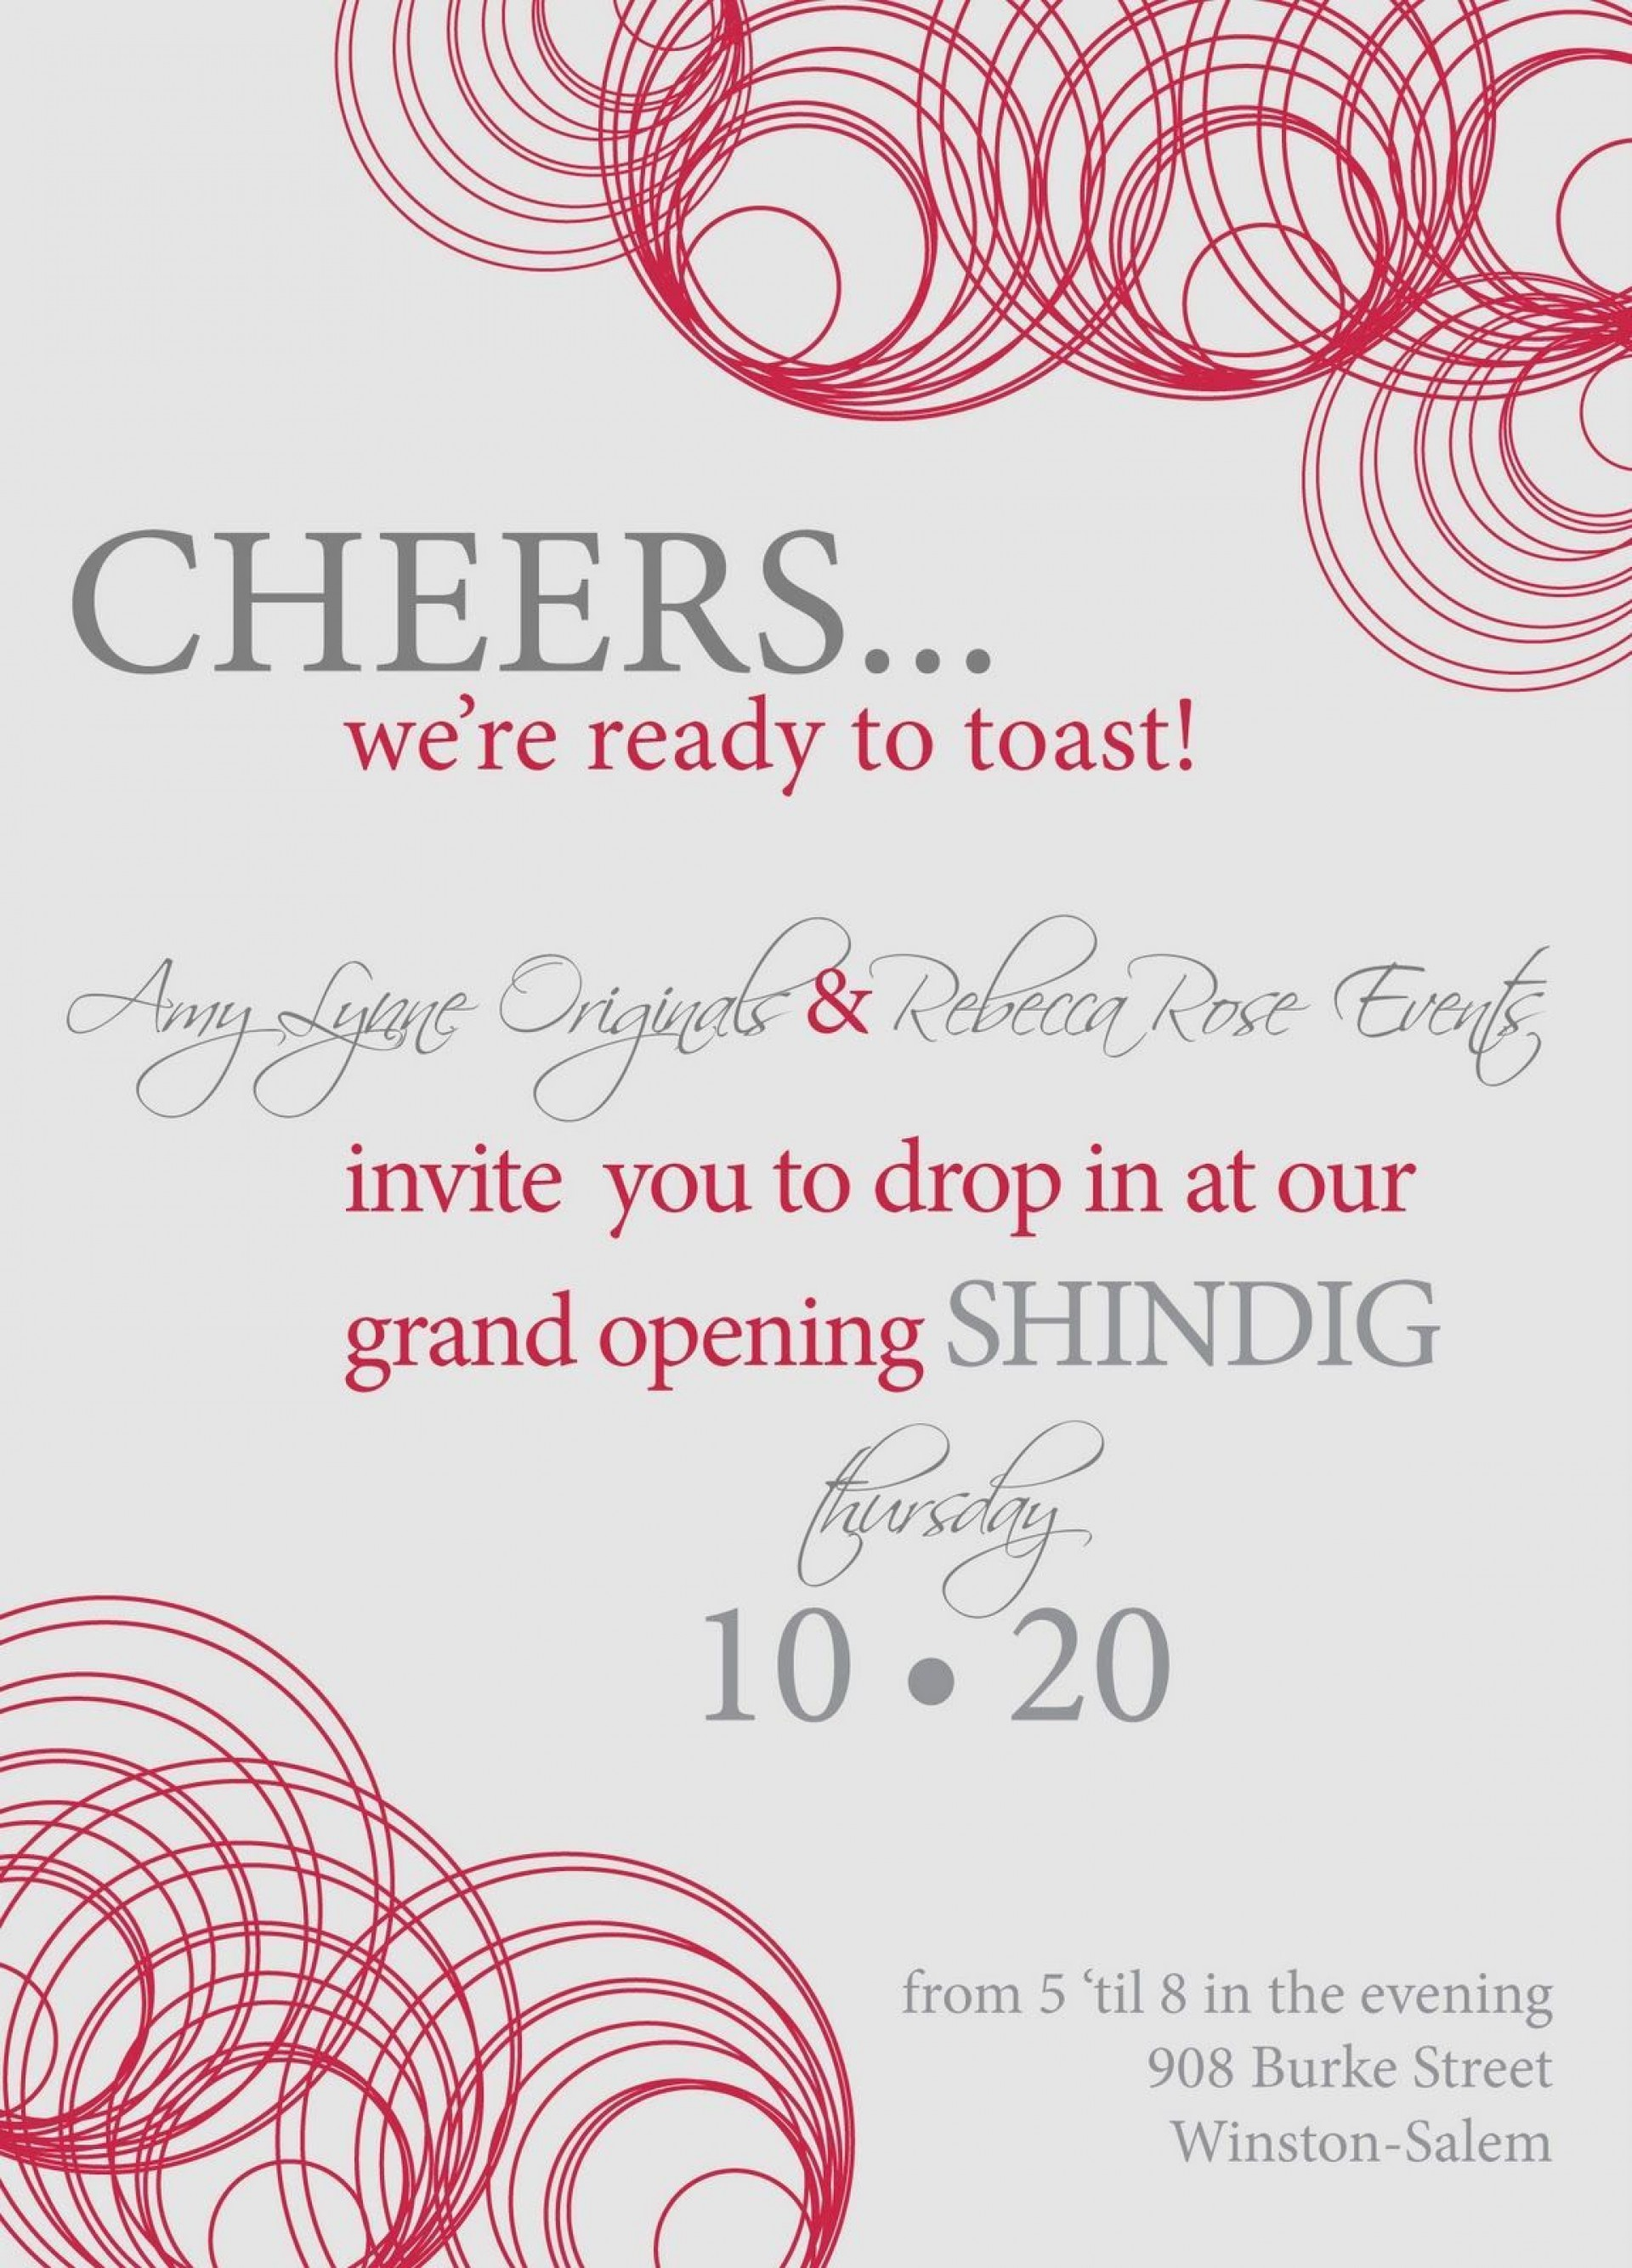 002 Imposing Open House Invitation Template Sample  Templates Free Printable Busines1920